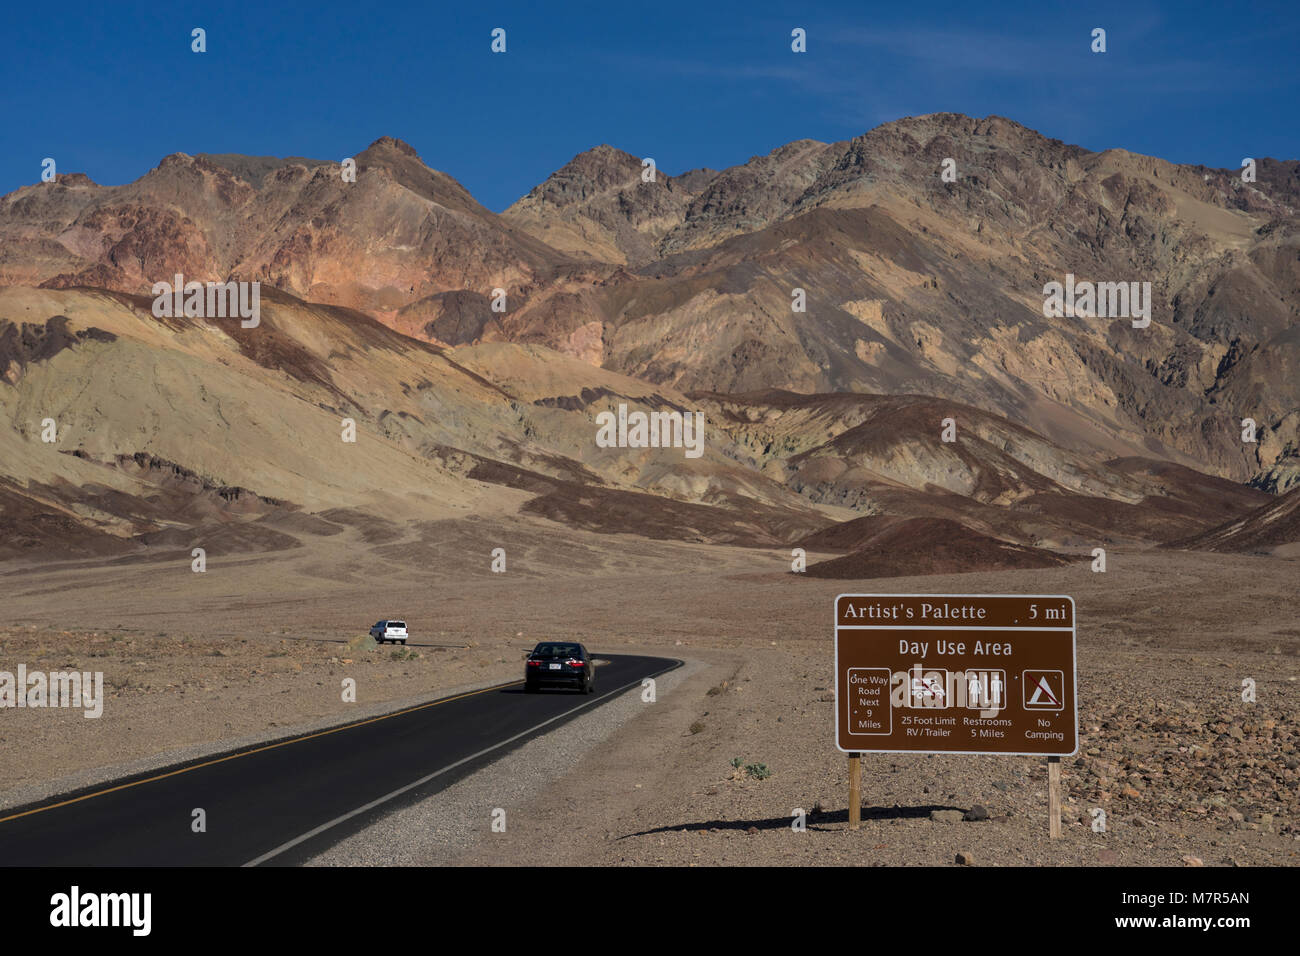 Artists Palette Drive,Death valley National Park ,California,United Staes - Stock Image